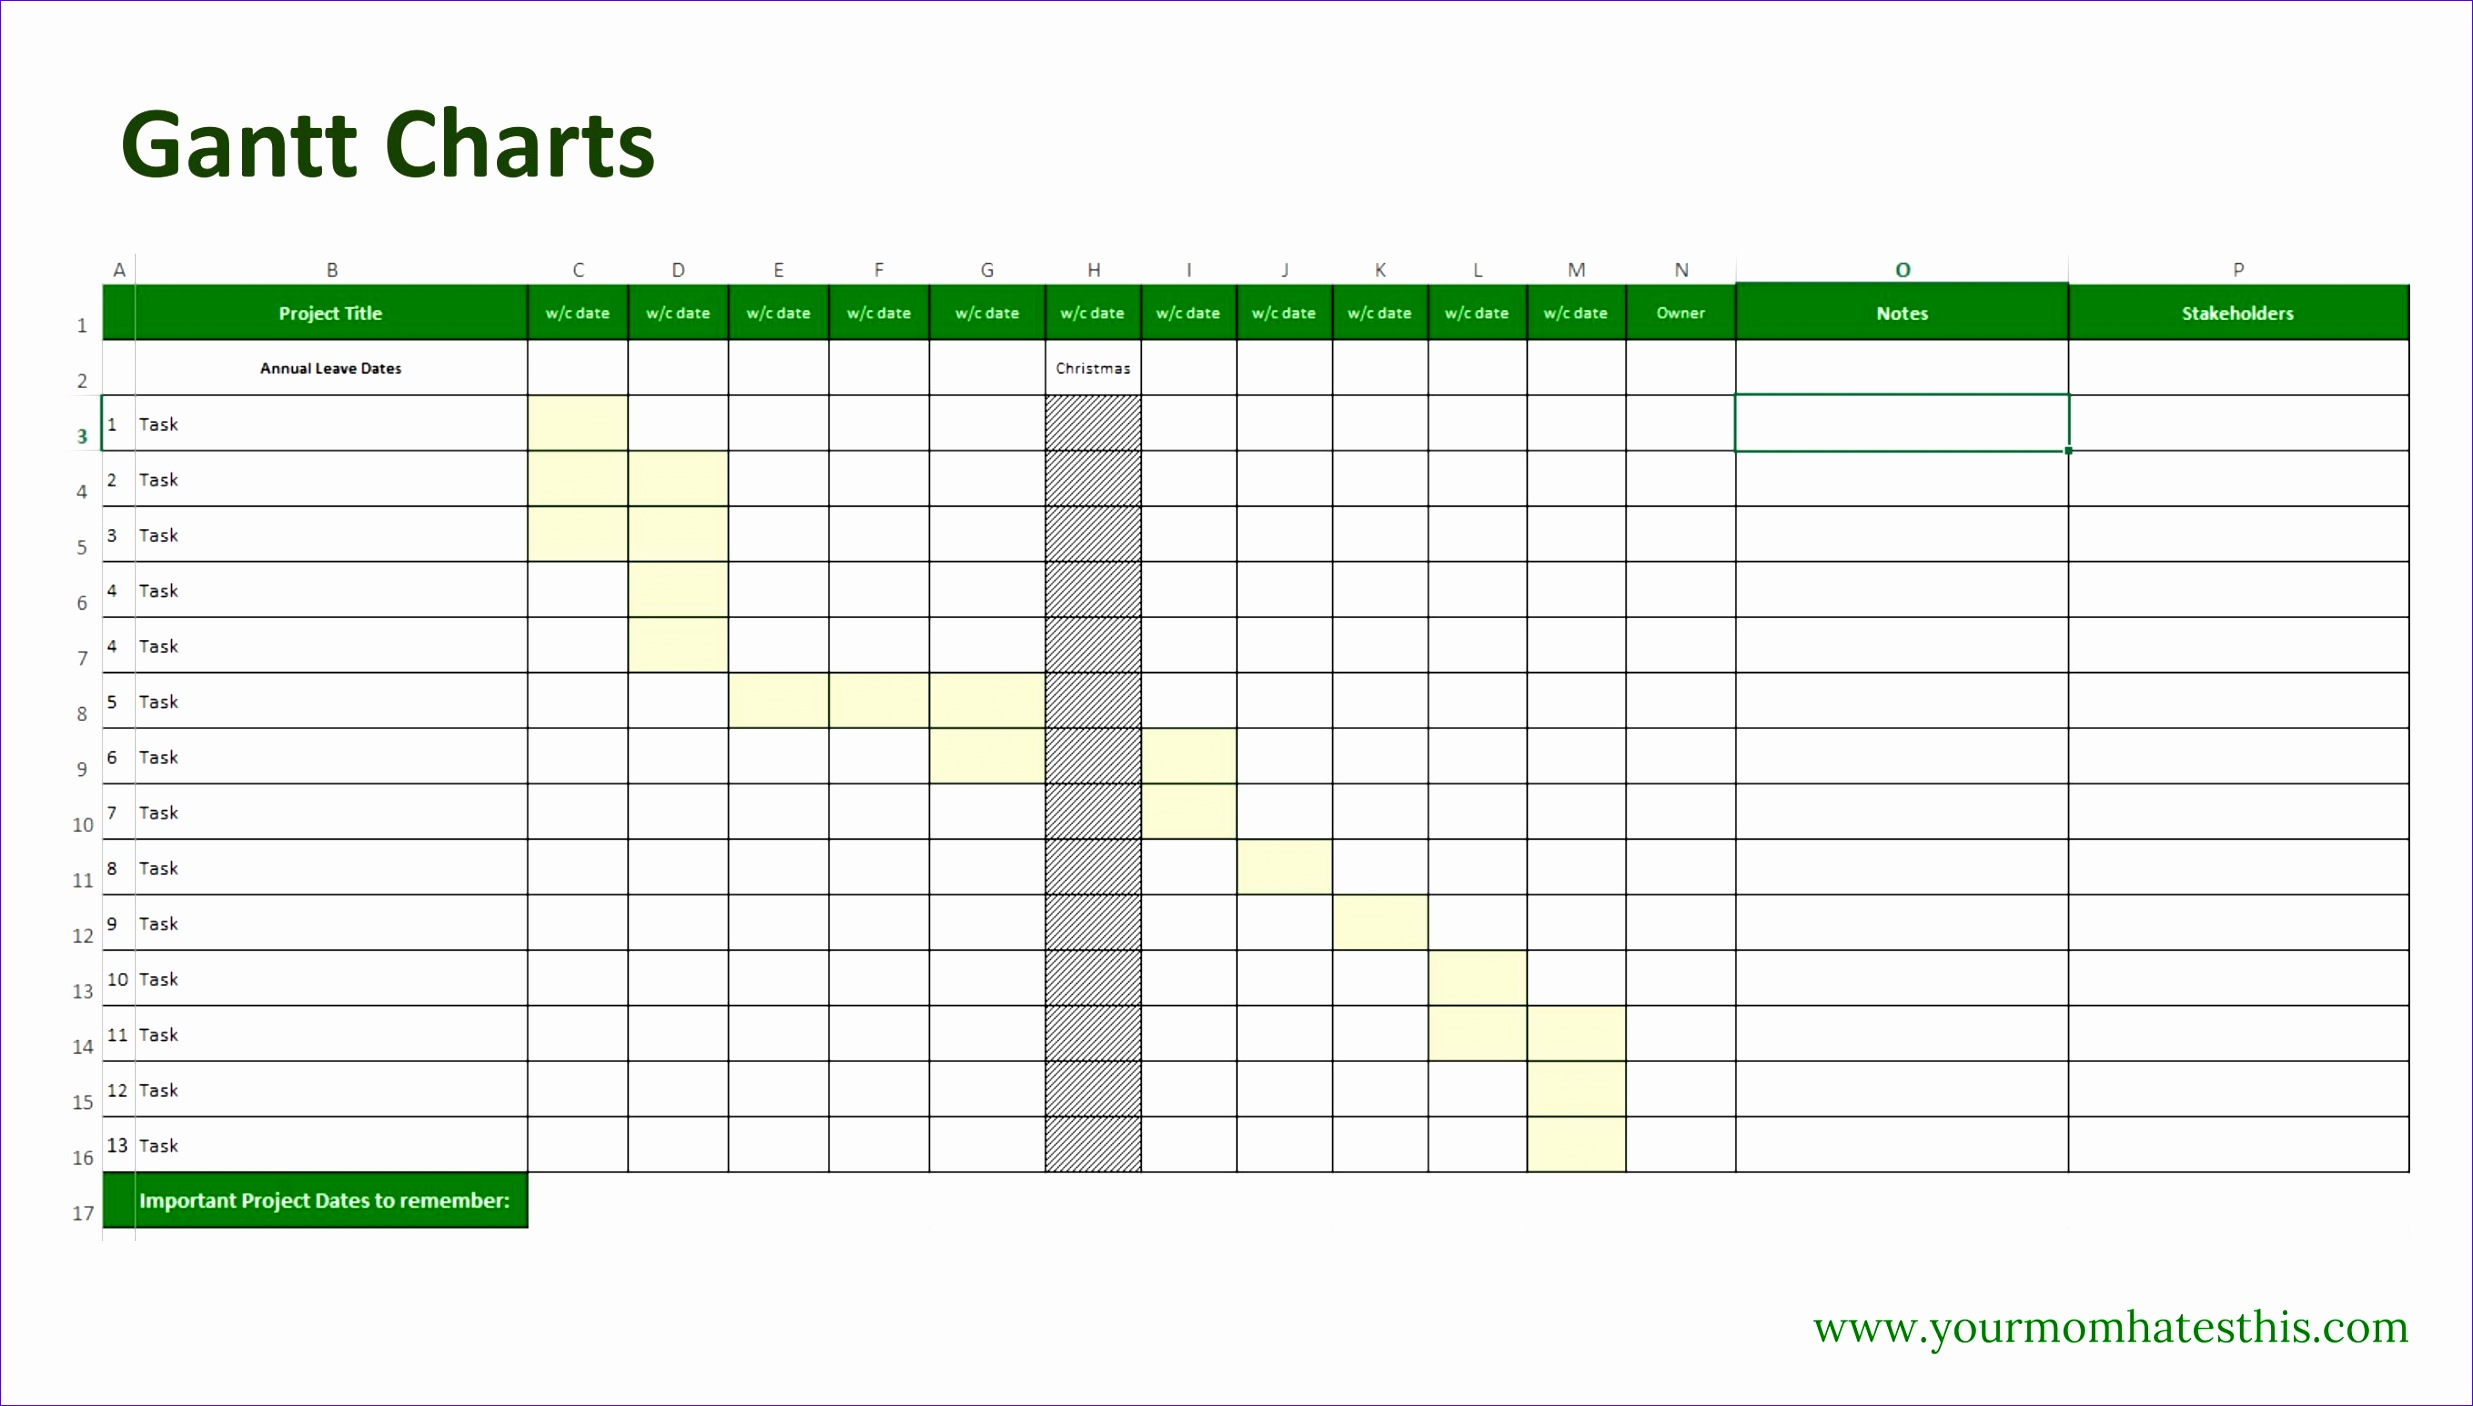 gantt chart excel documents softwares 24731406